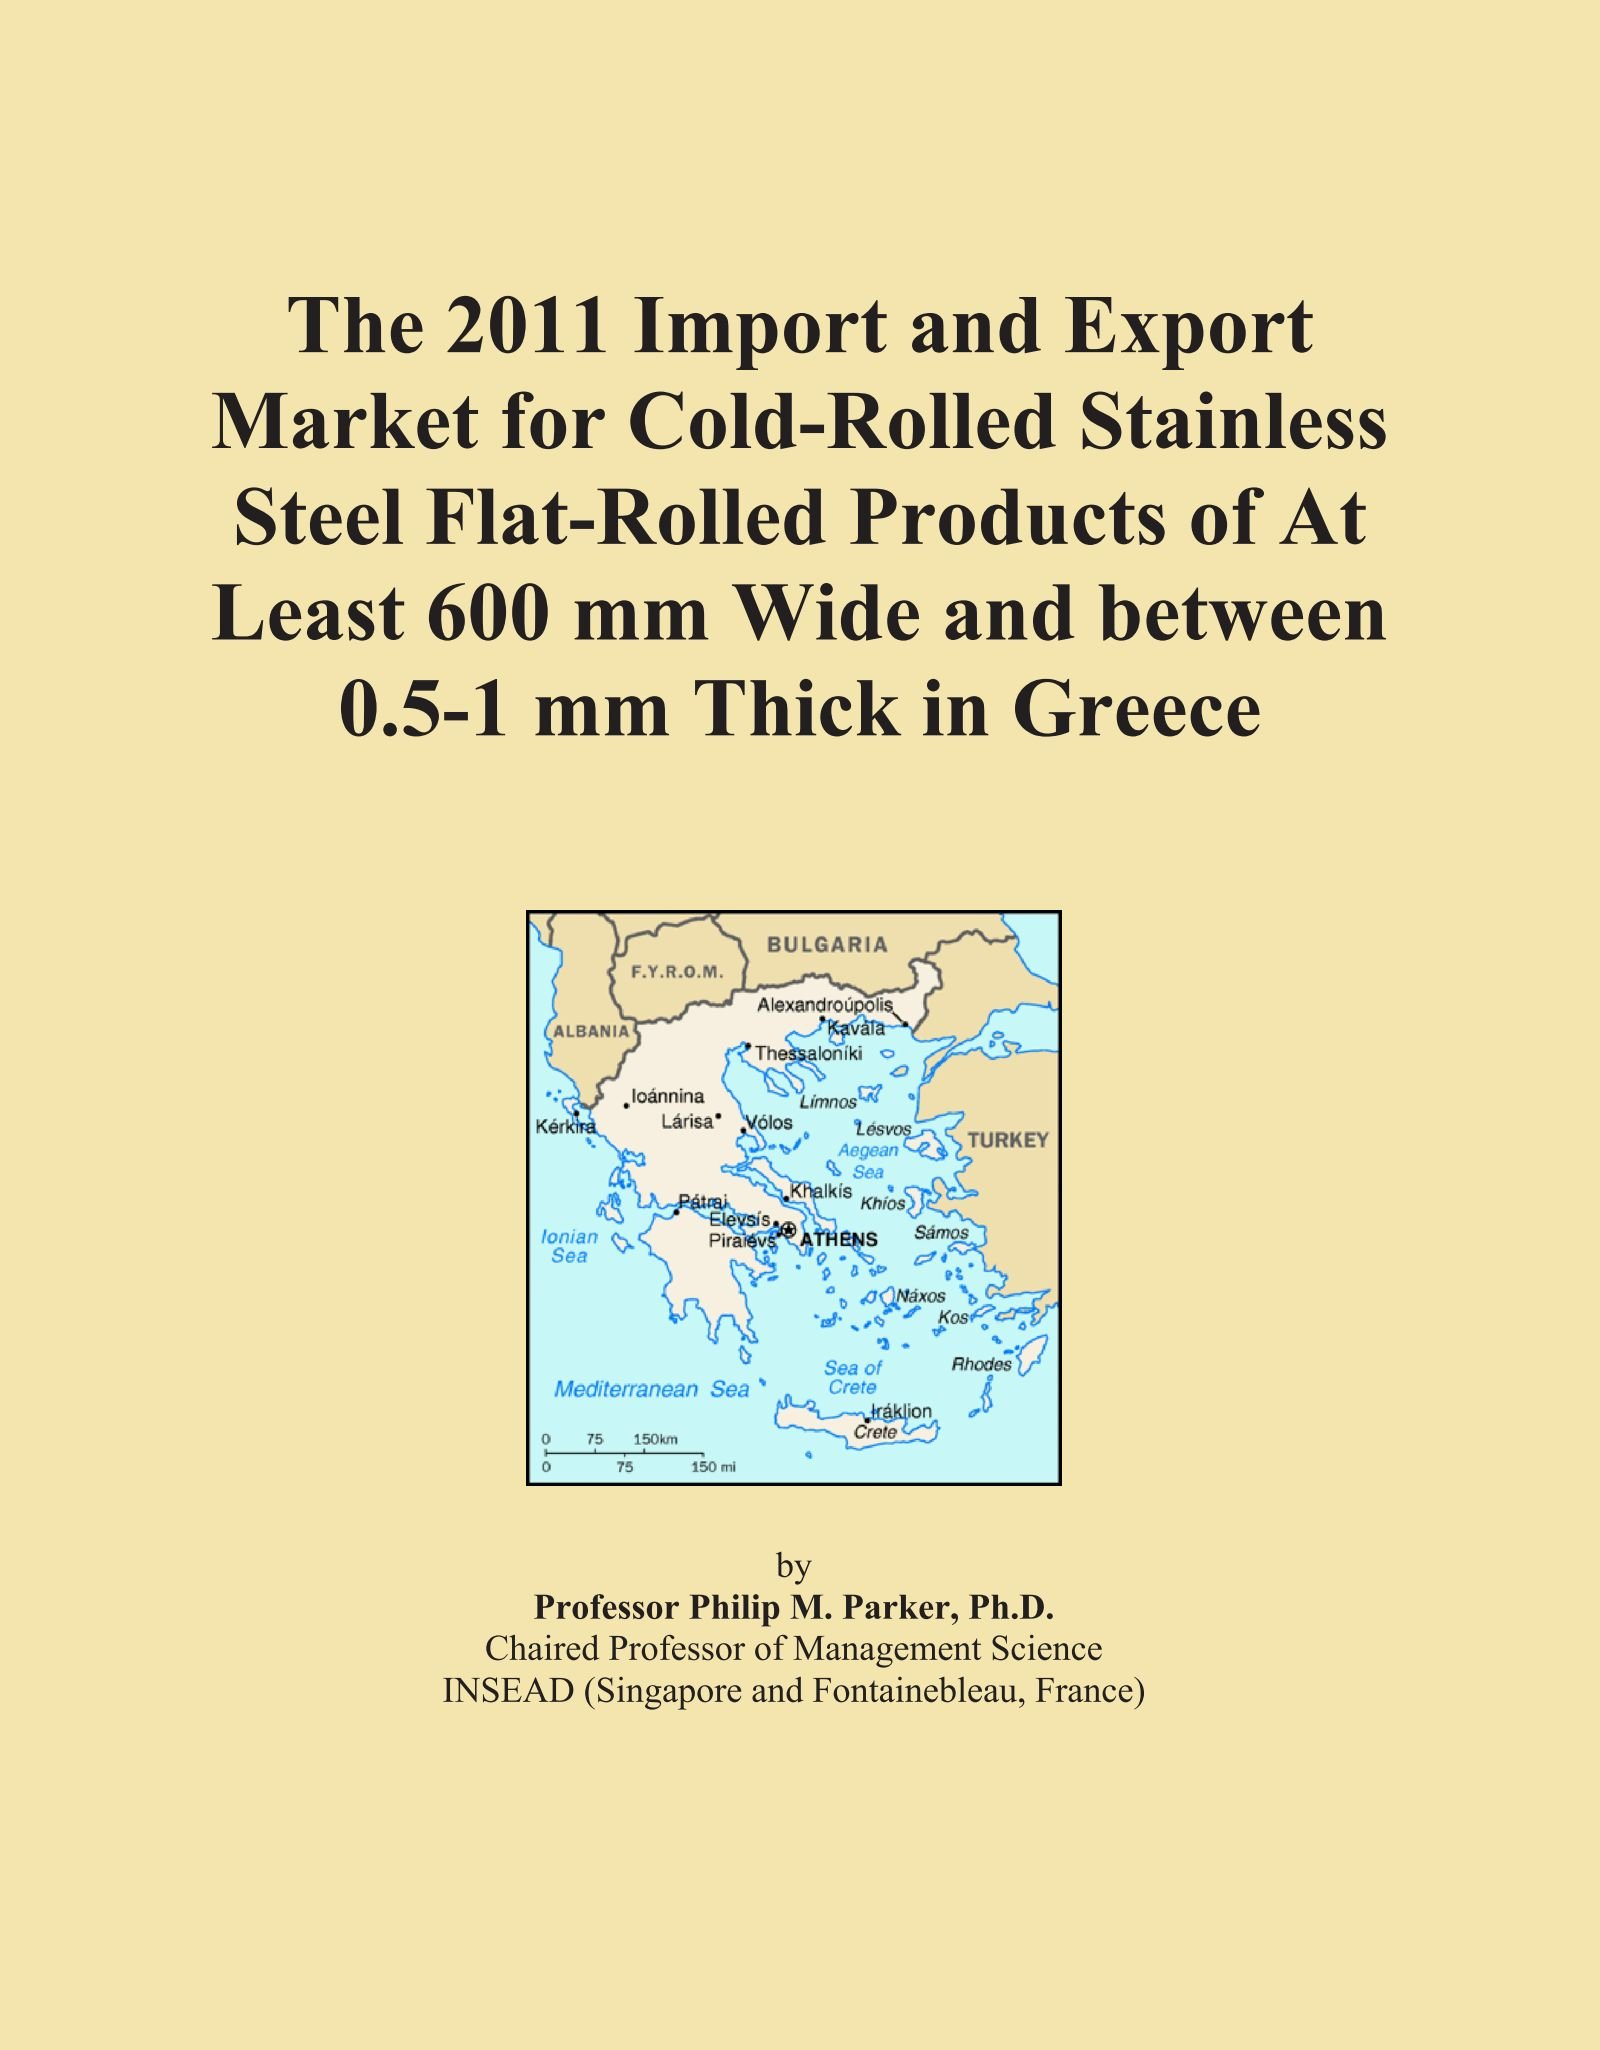 The 2011 Import and Export Market for Cold-Rolled Stainless Steel Flat-Rolled Products of At Least 600 mm Wide and between 0.5-1 mm Thick in Greece ebook